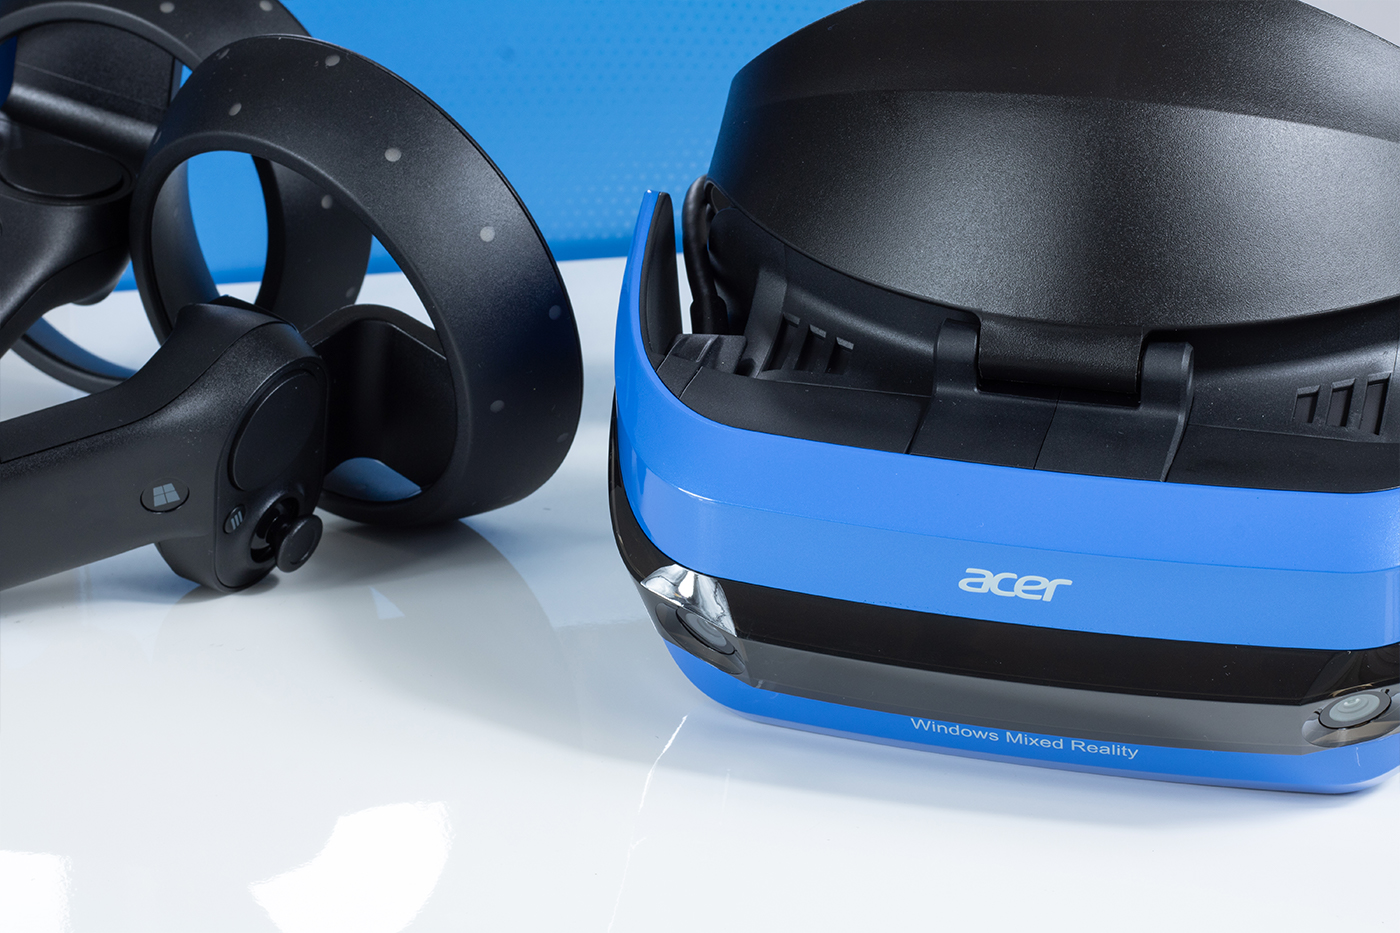 Acer Windows Mixed Reality Headset and Motion Controllers with blue retail box in background.